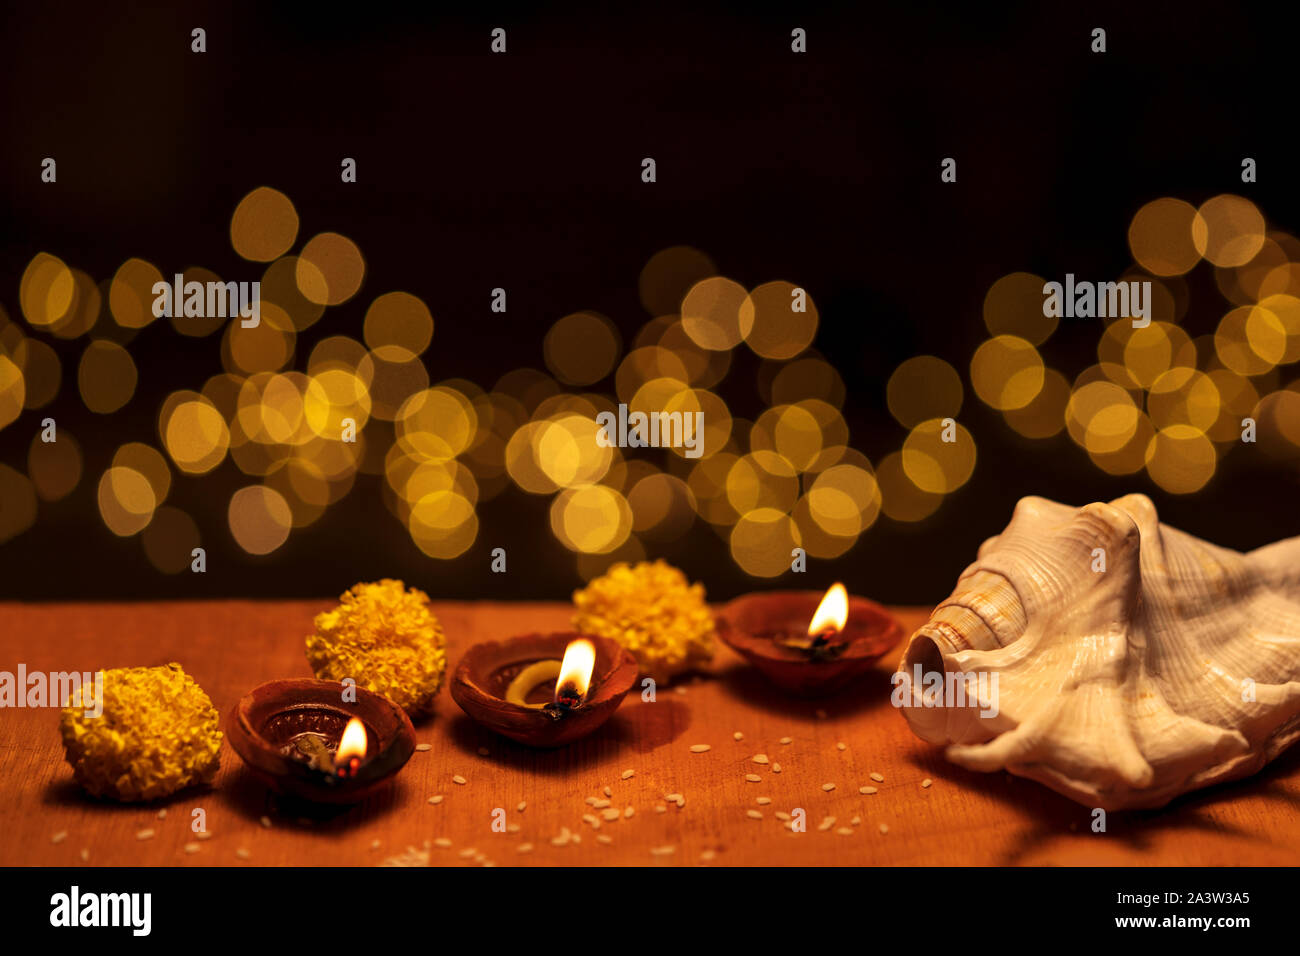 Diwali diya clay lamps decorated with flowers and shankha burning or glowing on a wooden background isolated in black with bokeh lights and copy space Stock Photo